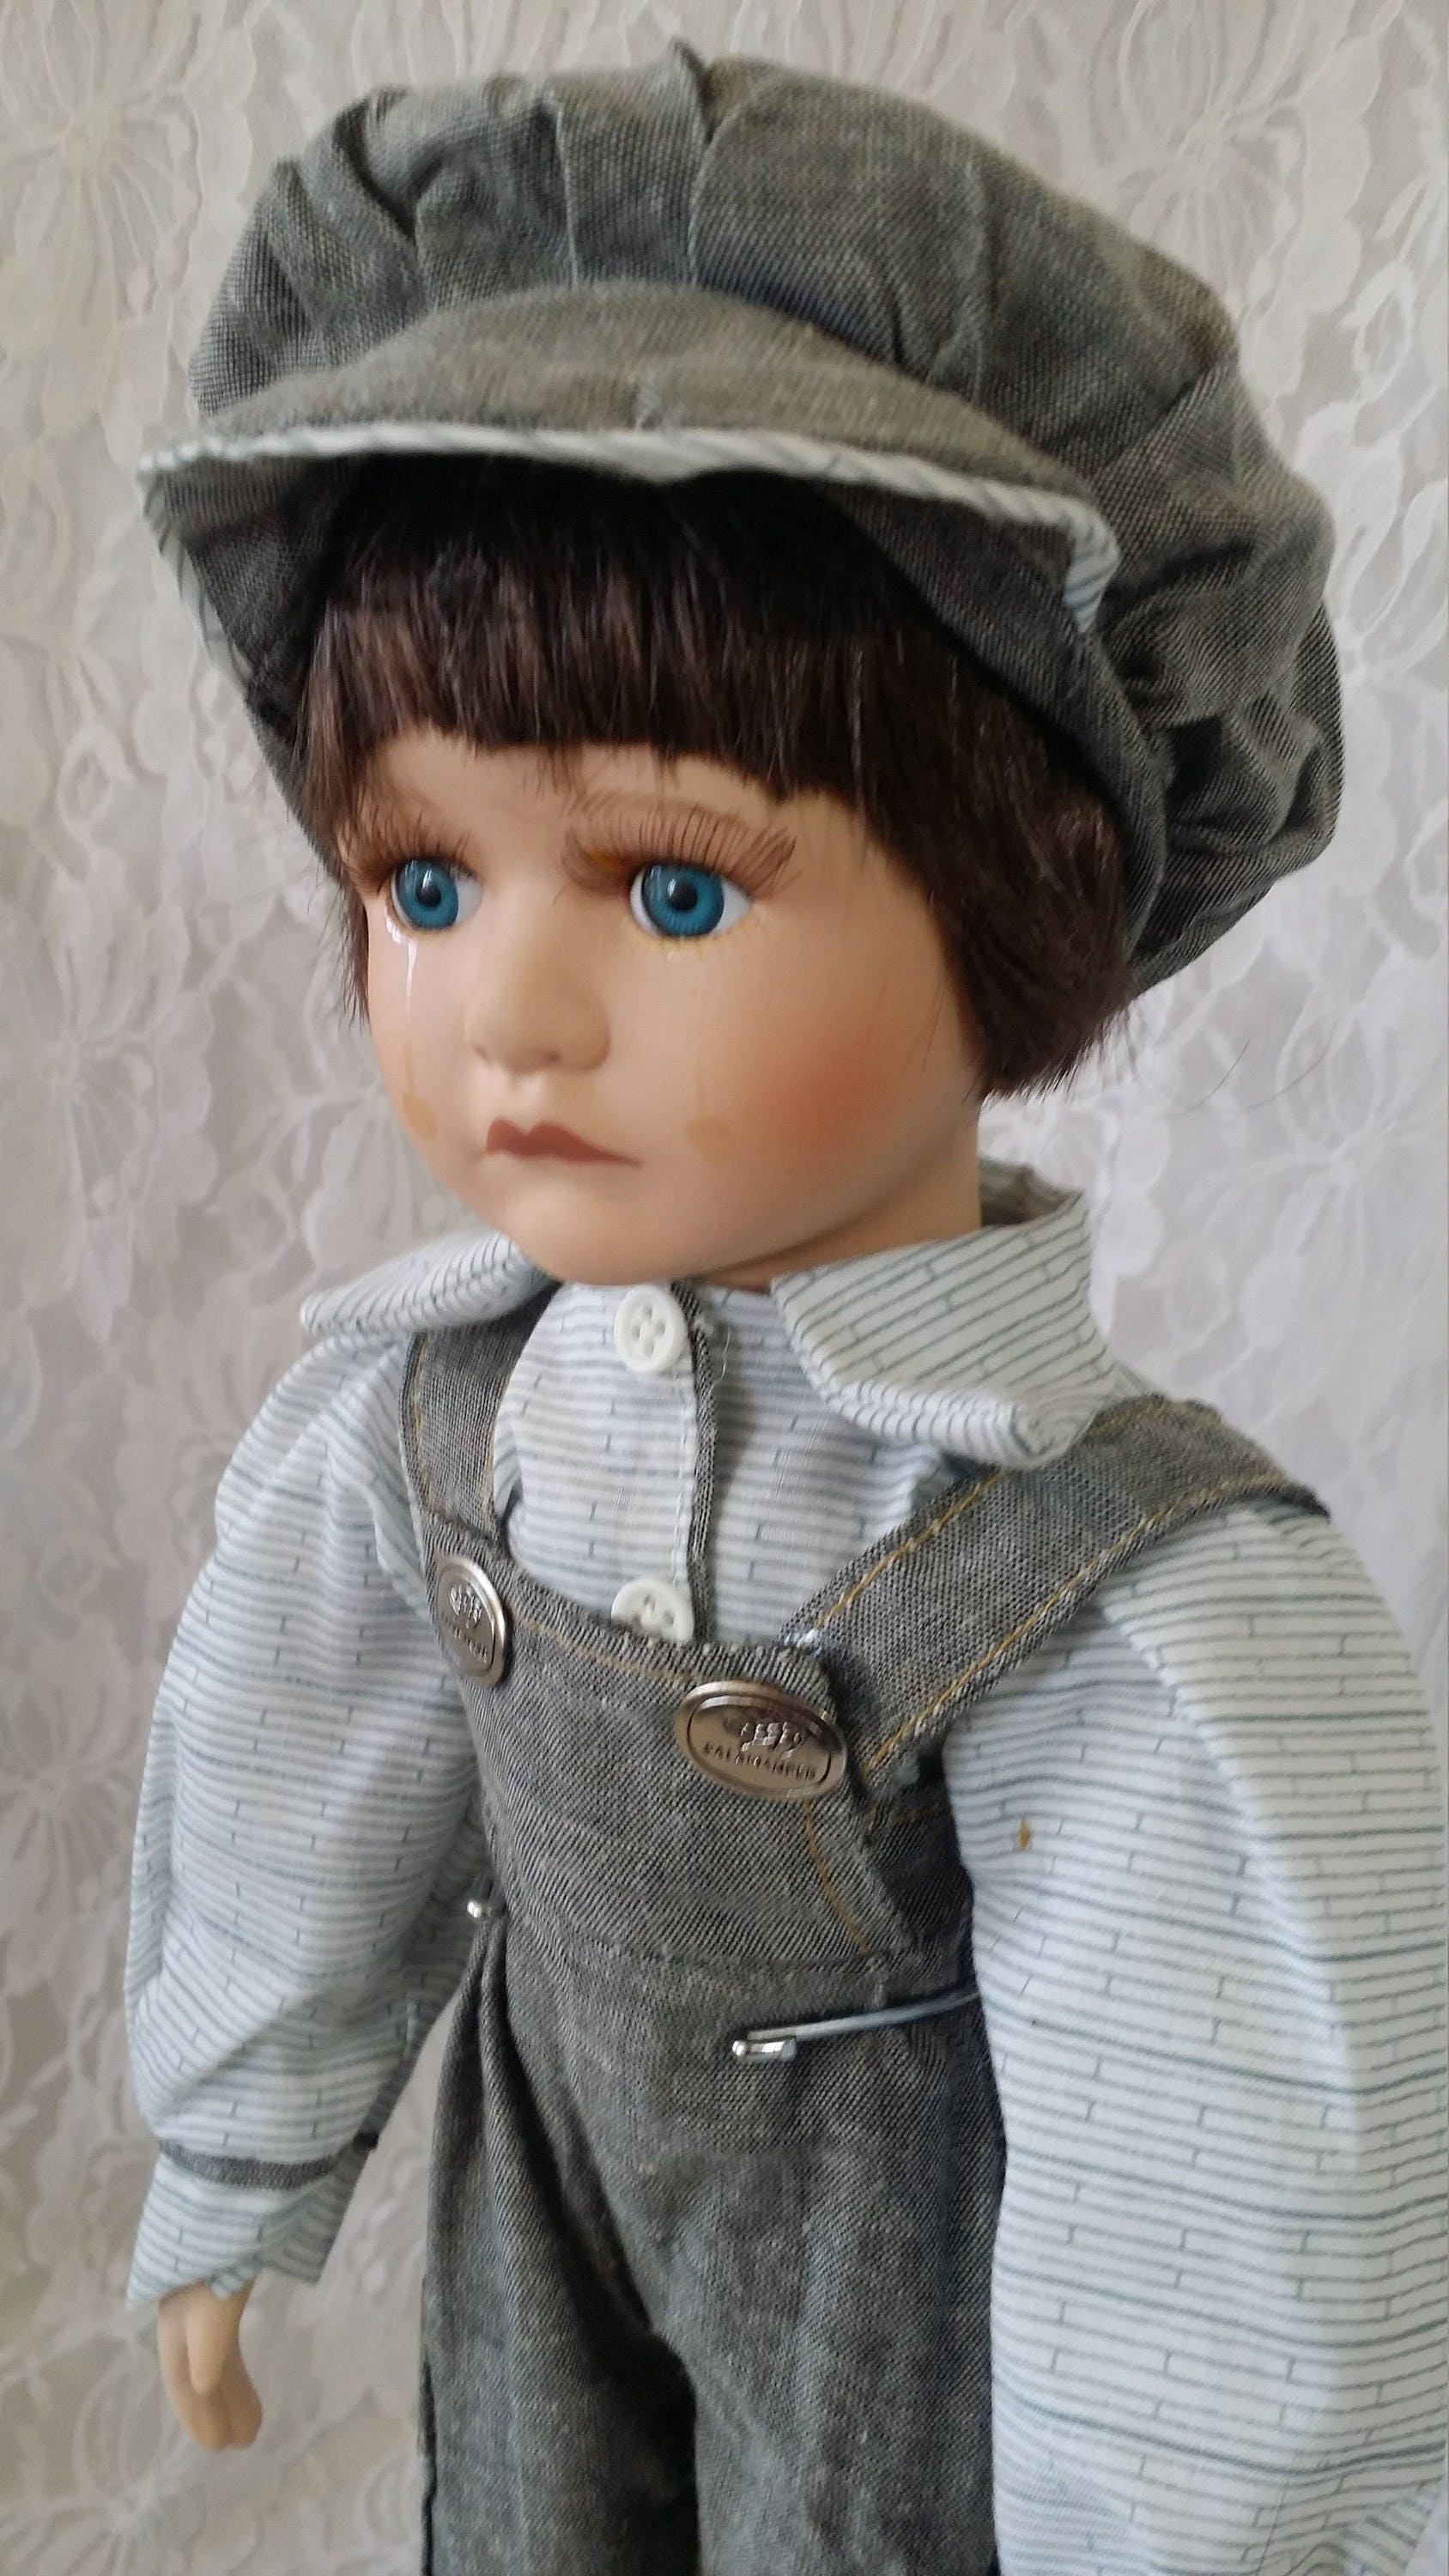 Reserved Vicky 8/8 Benedict ~ Haunted Porcelain Doll 8 Inch